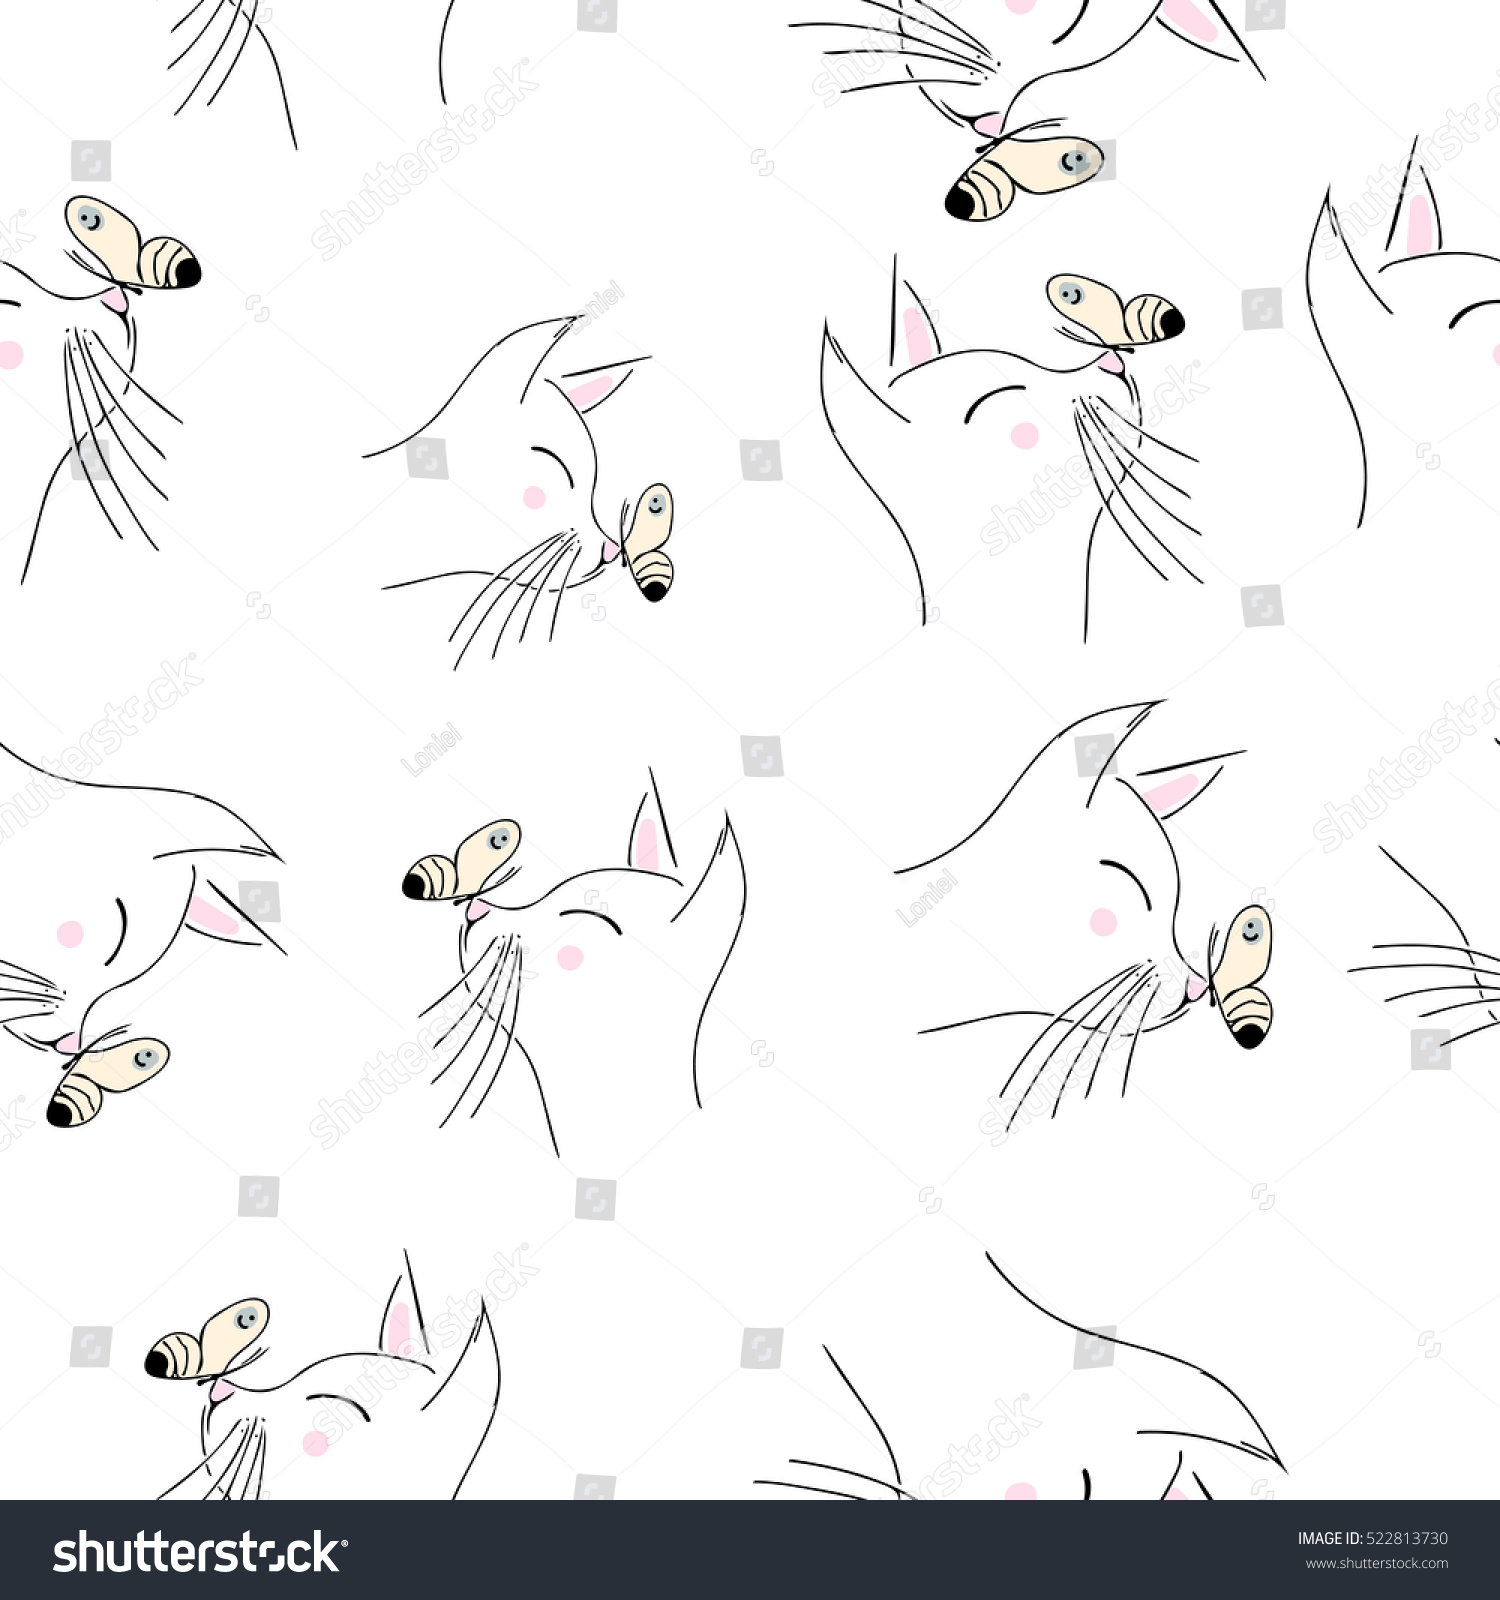 Popular Wallpaper Cat Butterfly - stock-vector-seamless-vector-pattern-with-cat-and-butterfly-perfect-for-wrapping-paper-wallpaper-repeating-522813730  Pictures_569312 .jpg